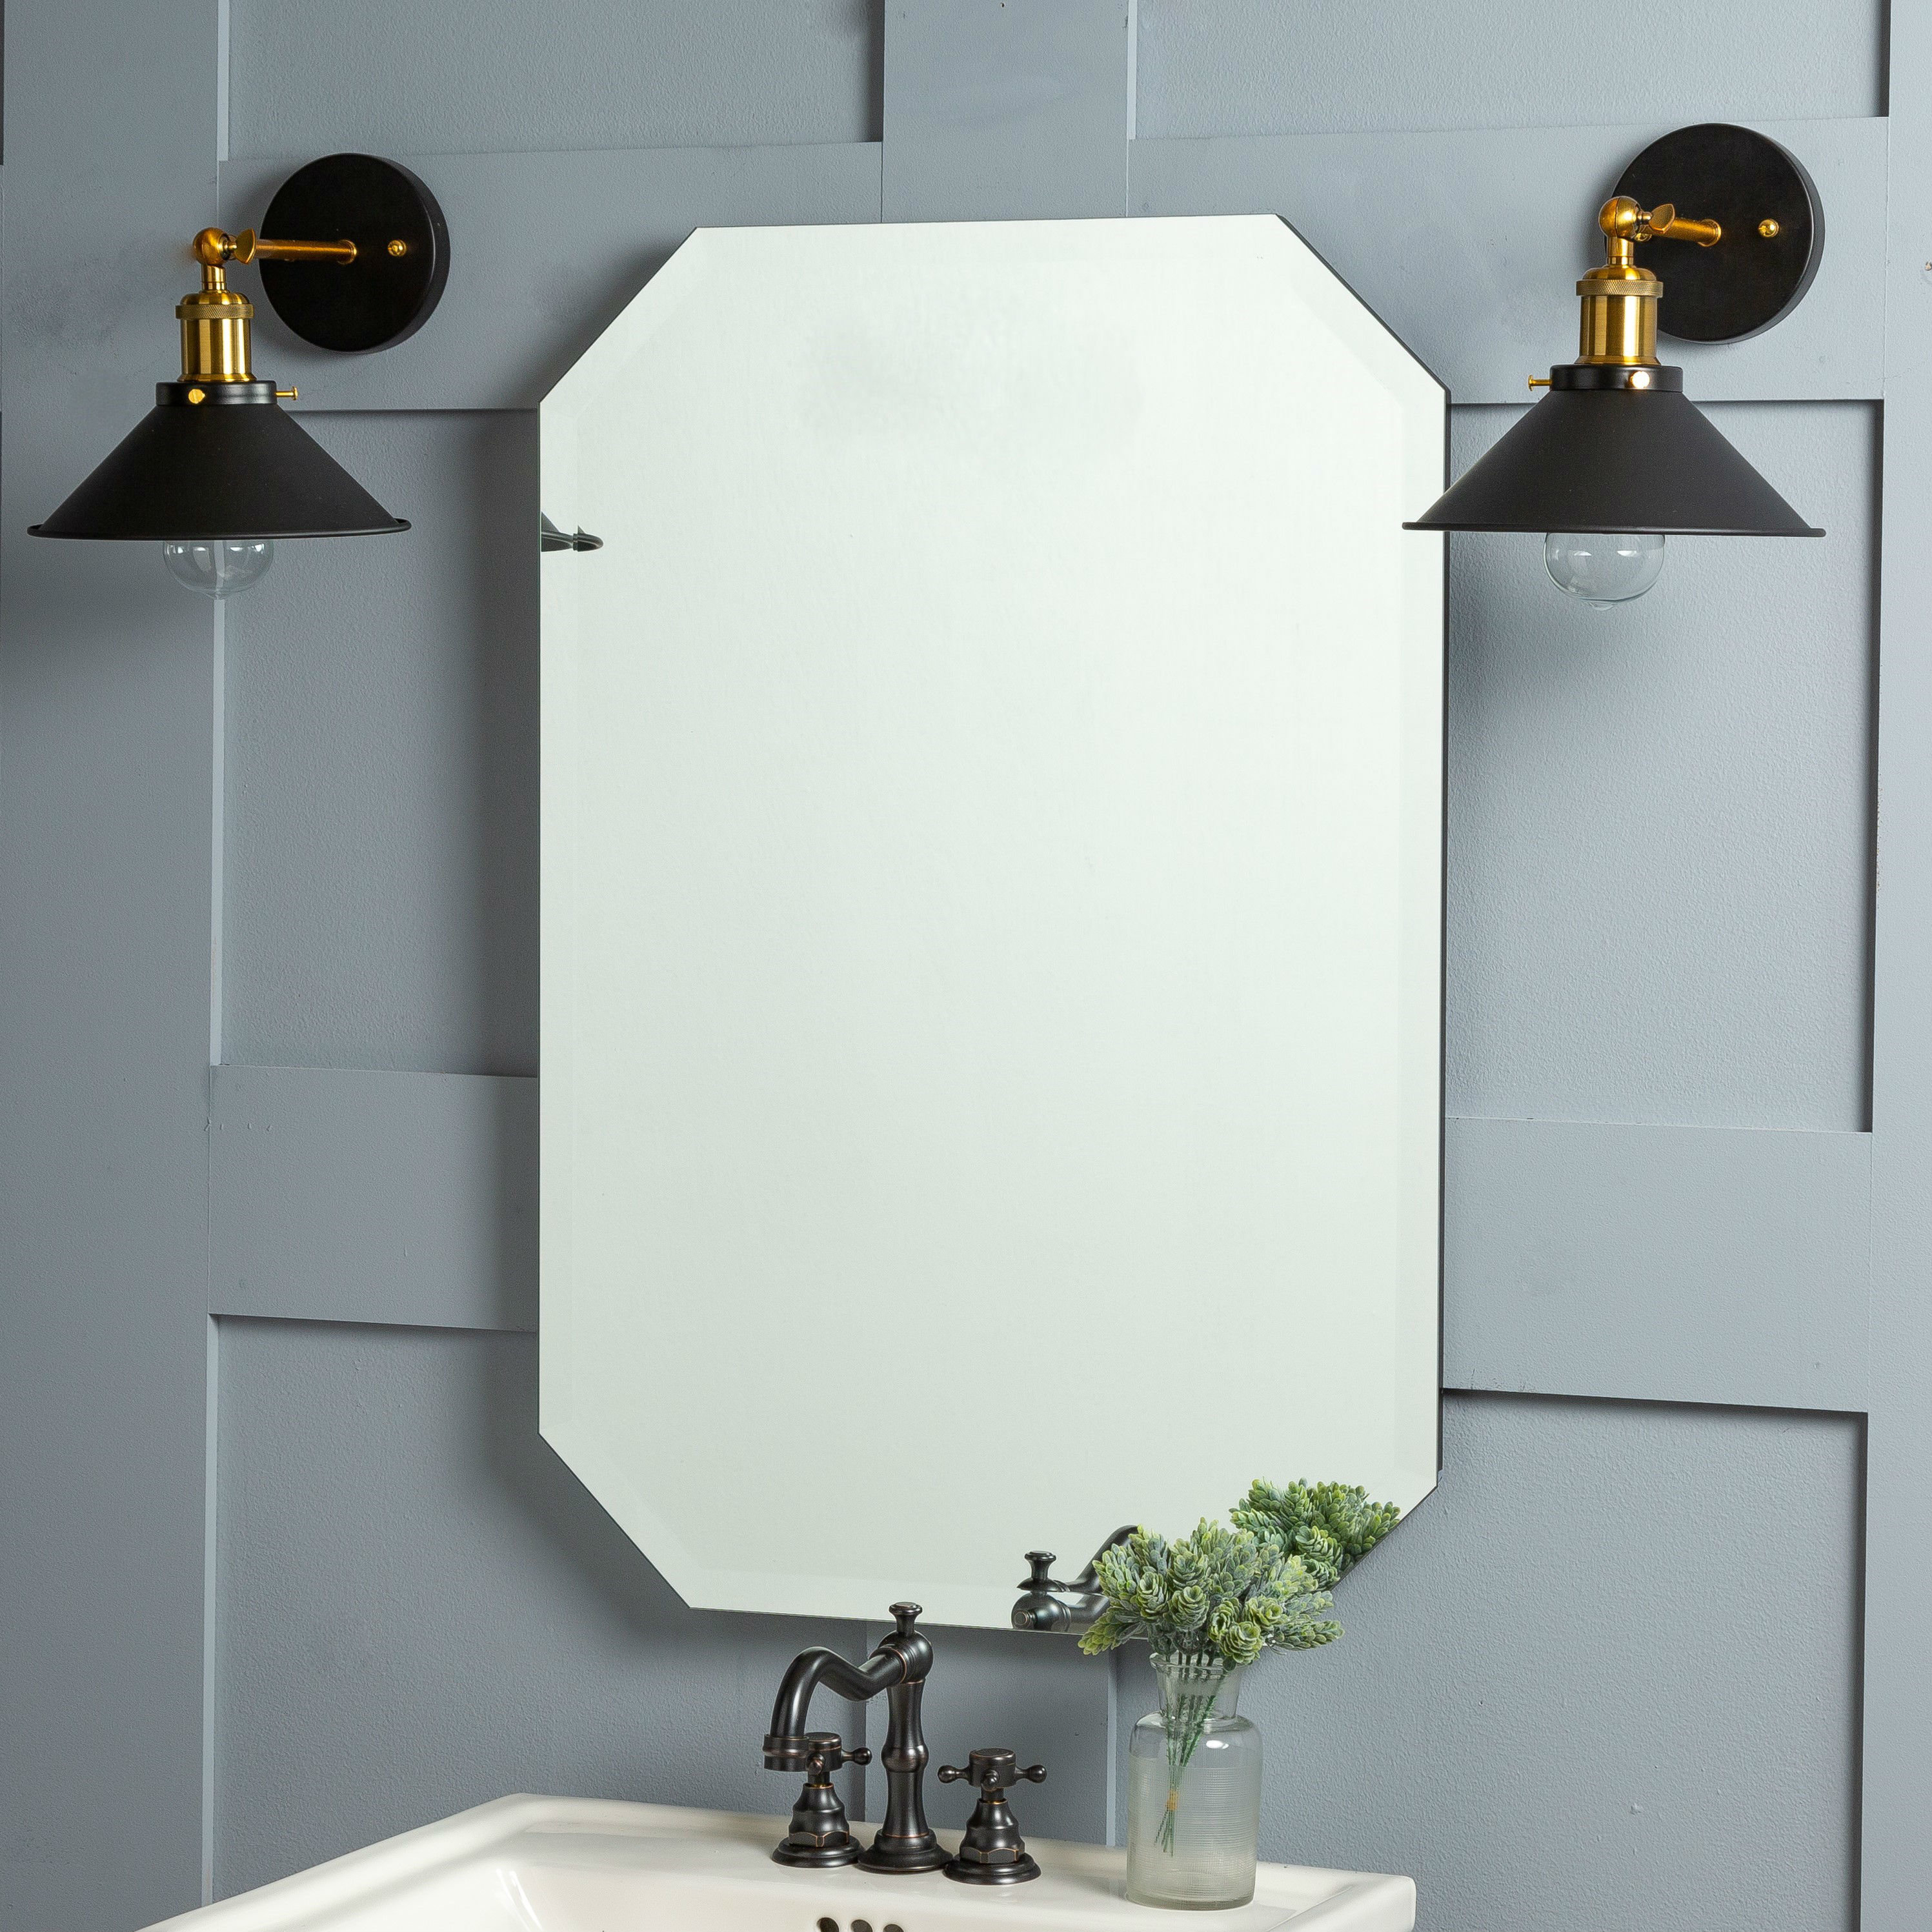 Farmhouse & Rustic Frameless Wall & Accent Mirrors | Birch Lane Pertaining To Thornbury Oval Bevel Frameless Wall Mirrors (View 19 of 20)